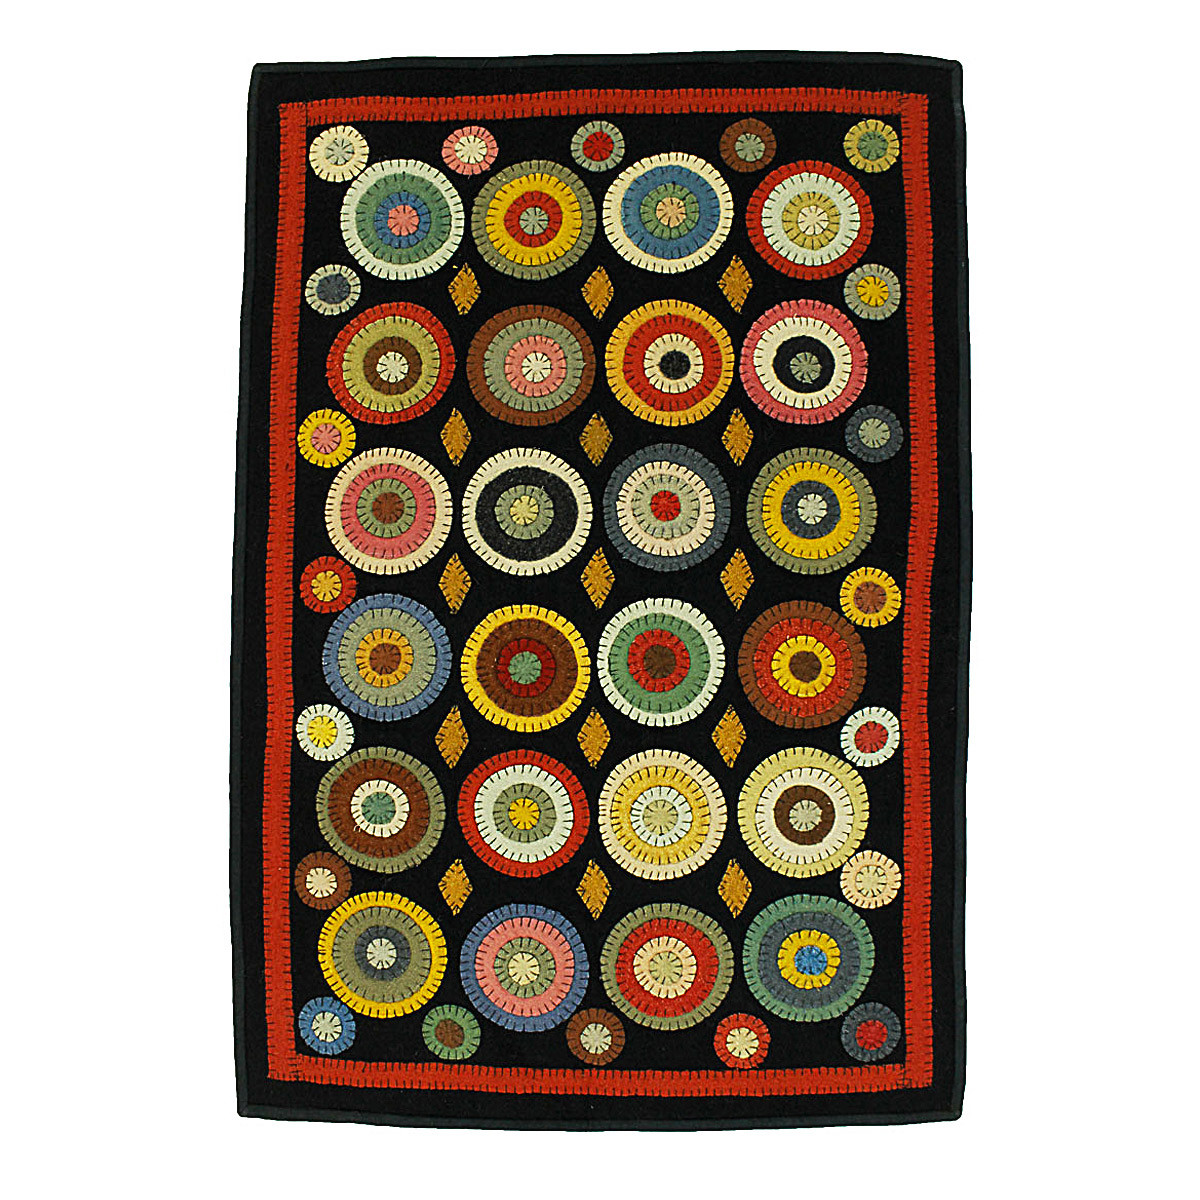 Buy Coin Rug Penny Rugs Online Homespice